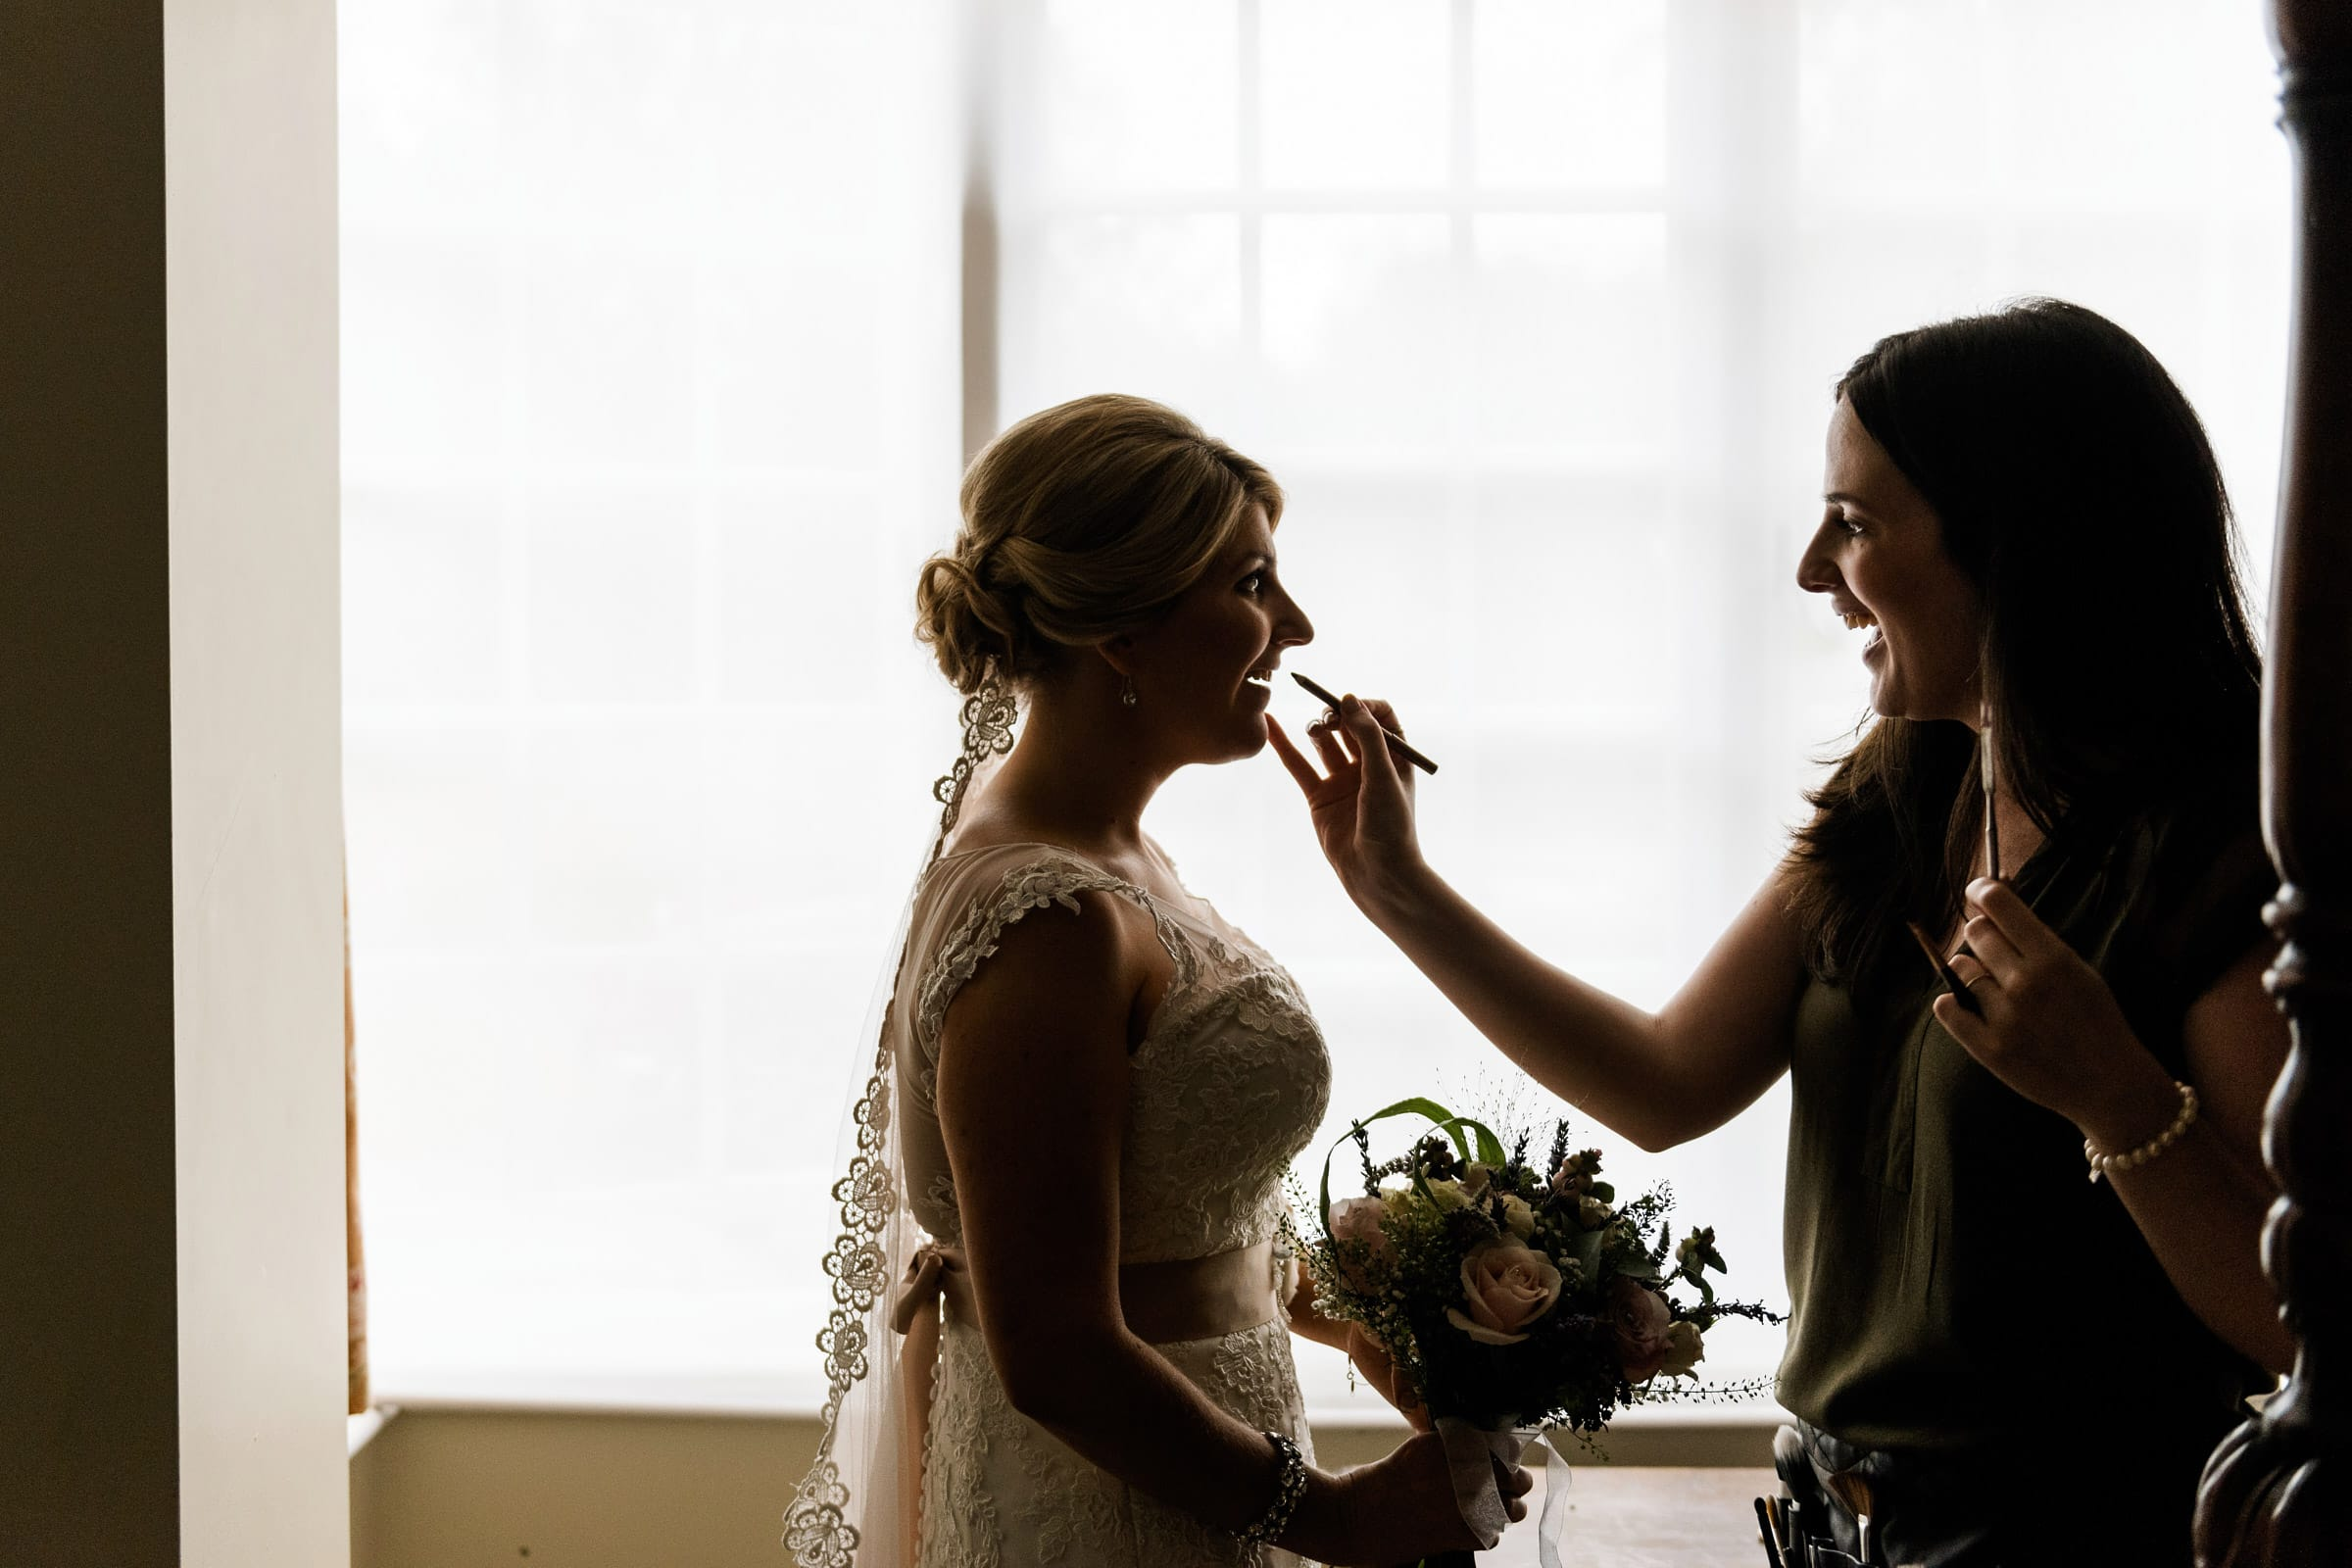 Bride has makeup applied silhouetted in window